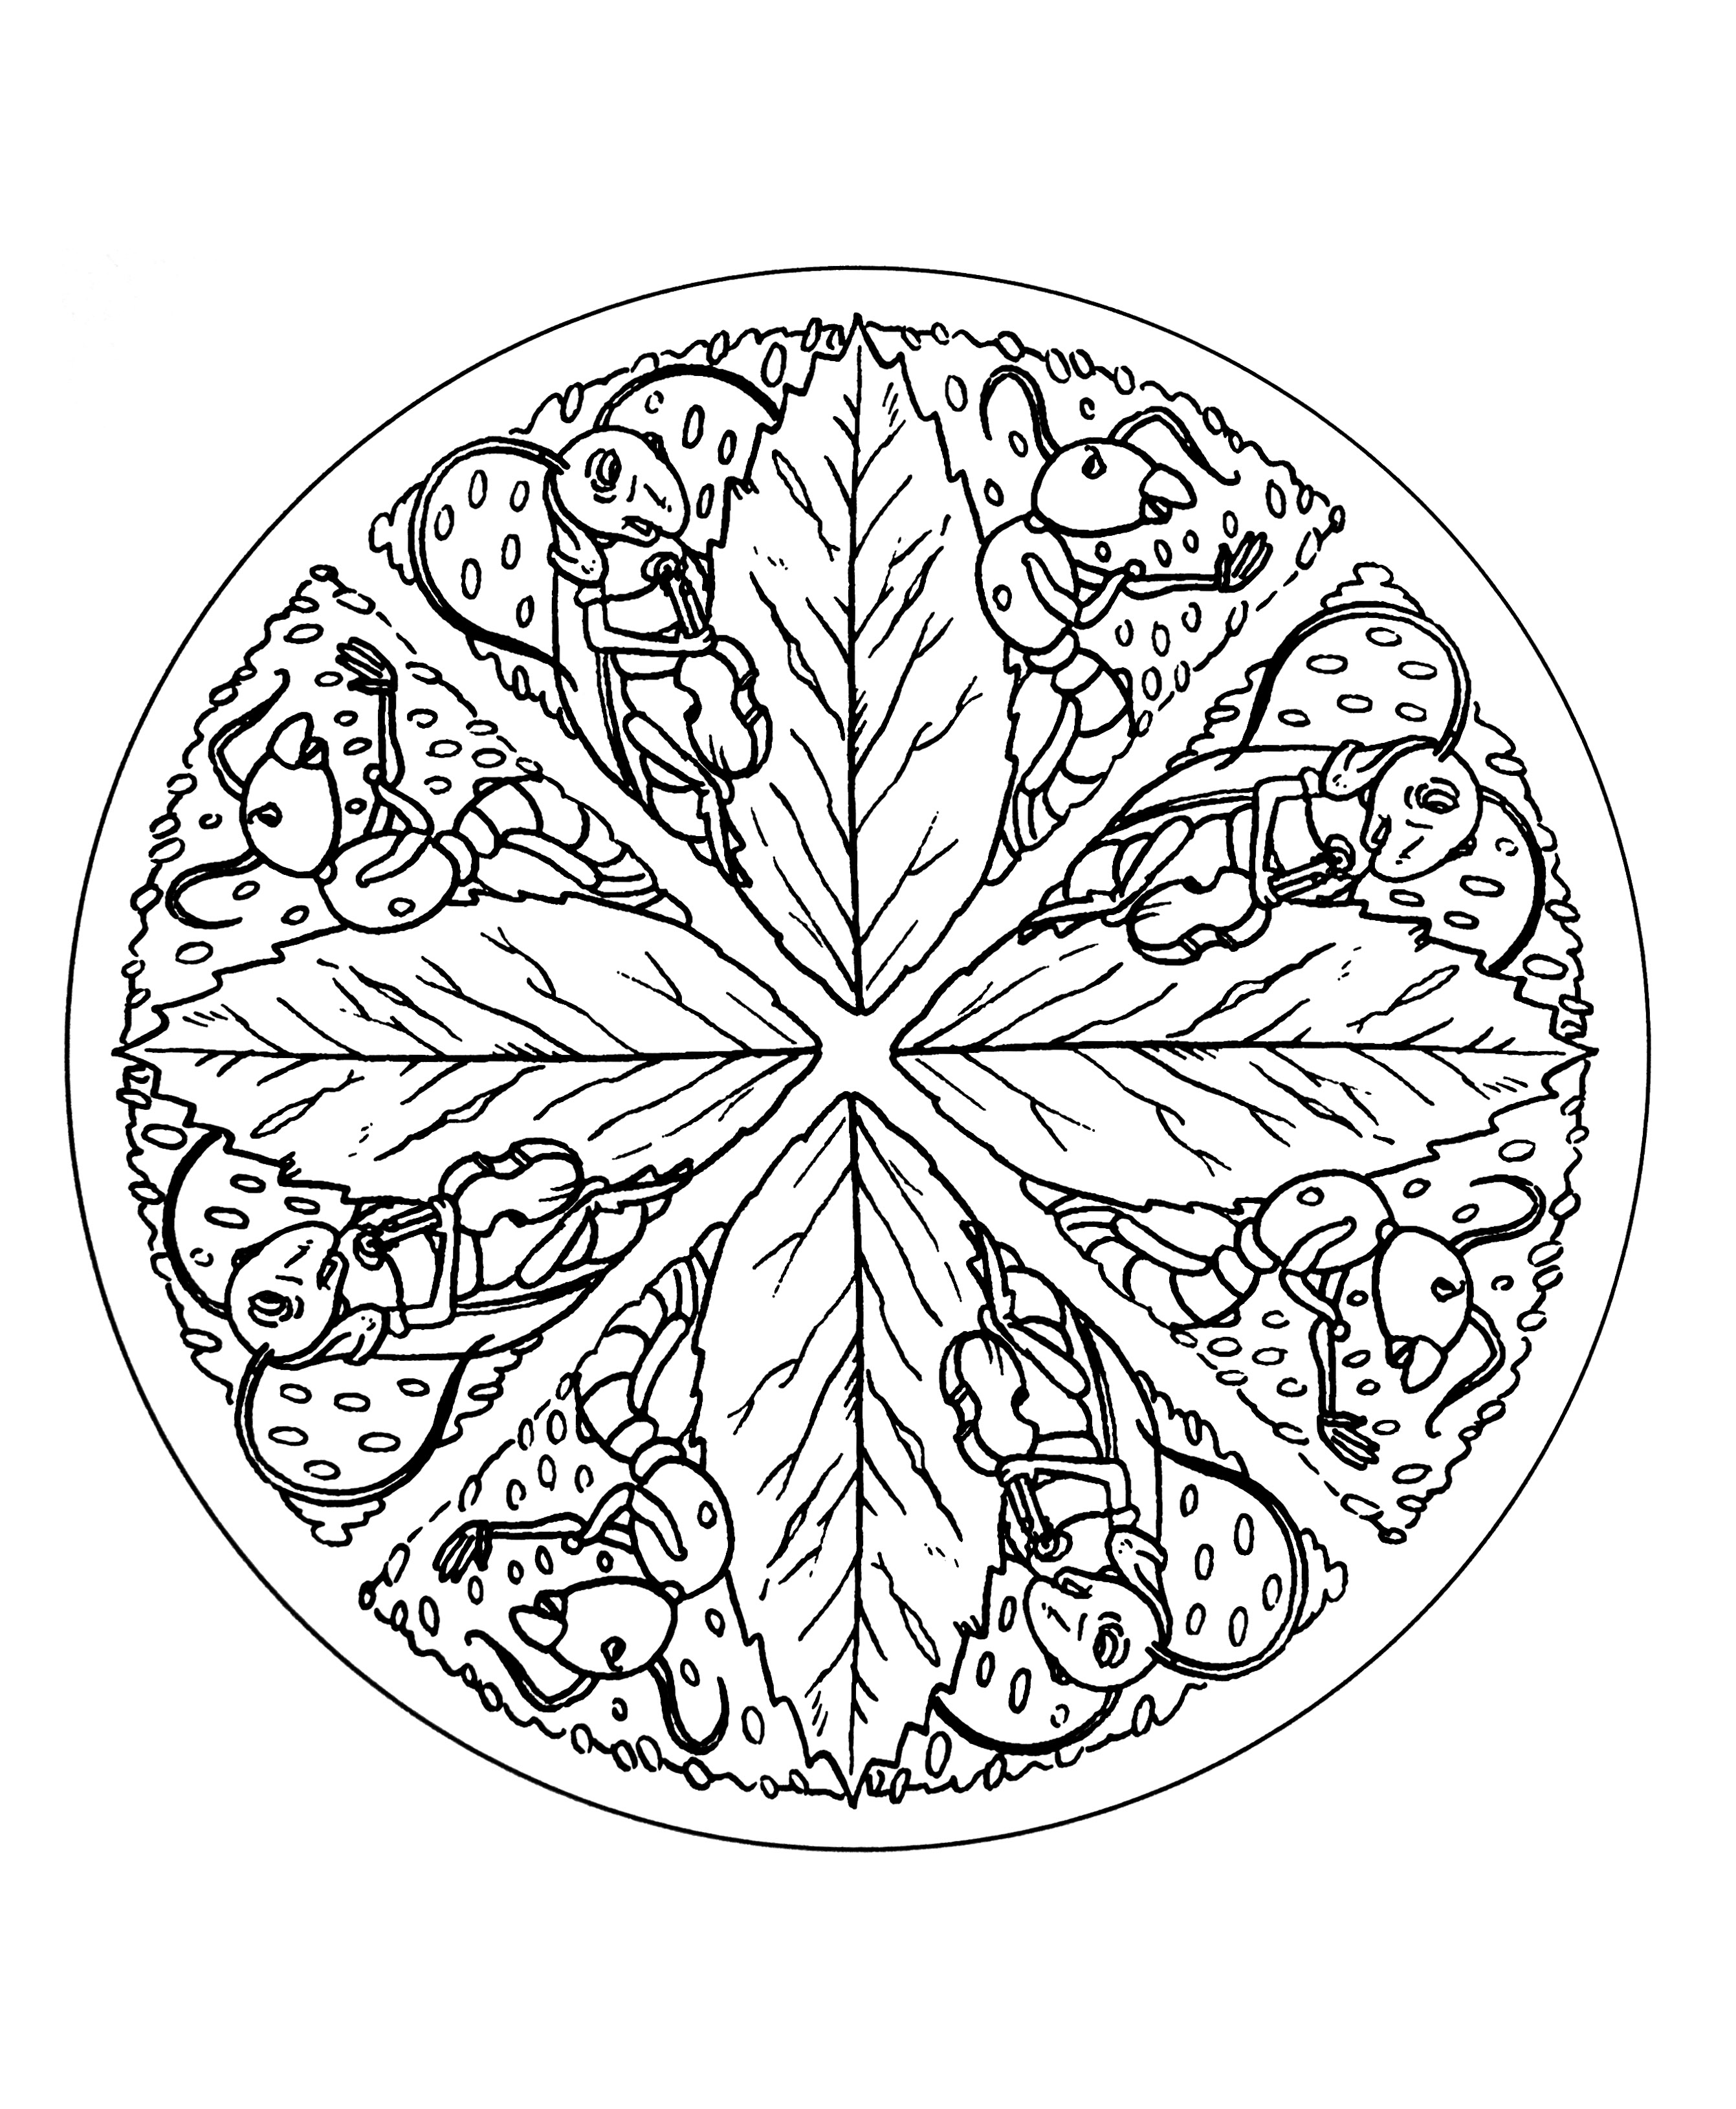 simple mandalas to color simple mandala 17 mandalas coloring pages for kids to mandalas to simple color